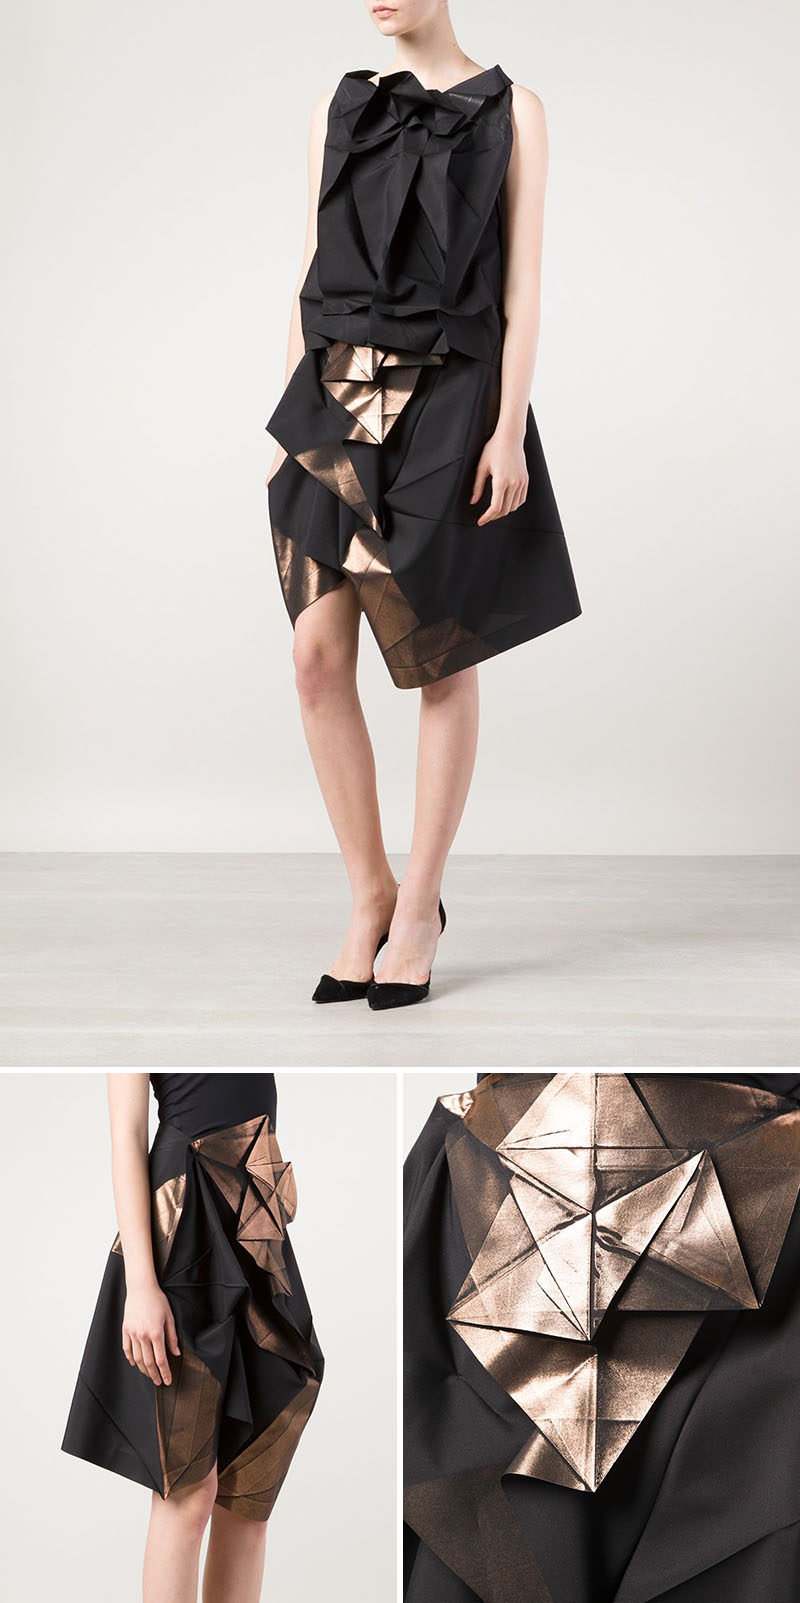 10 Modern And Creative Fashion Designs Inspired By Origami